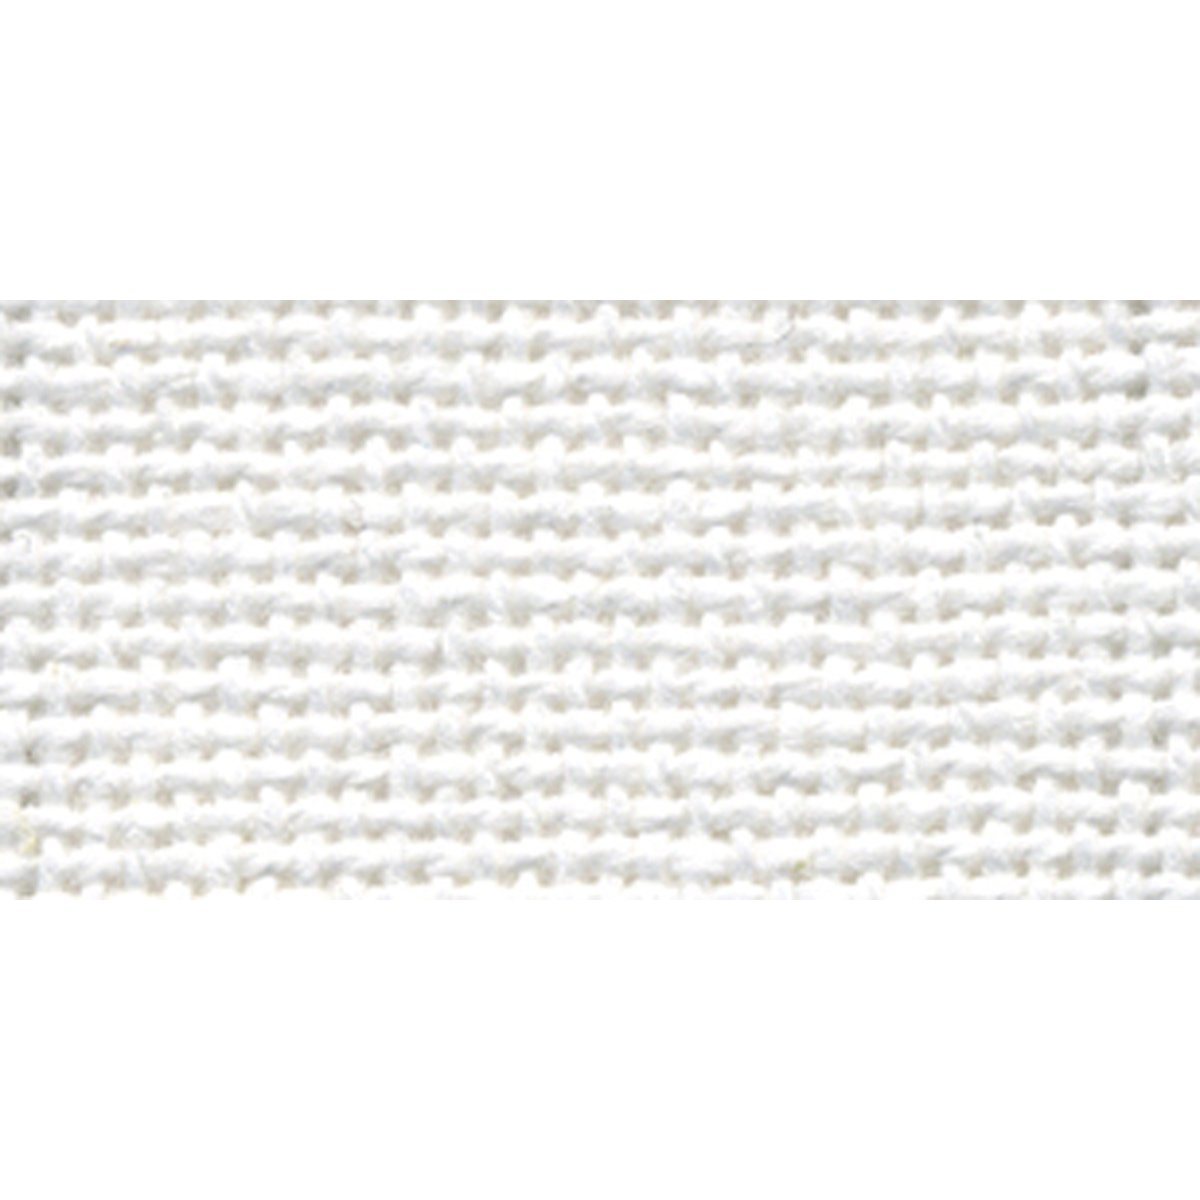 DMC MO0237-6750 Charles Craft 20 by 24-Inch Evenweave Monaco Aida Cloth, White, 28-Count Notions - In Network